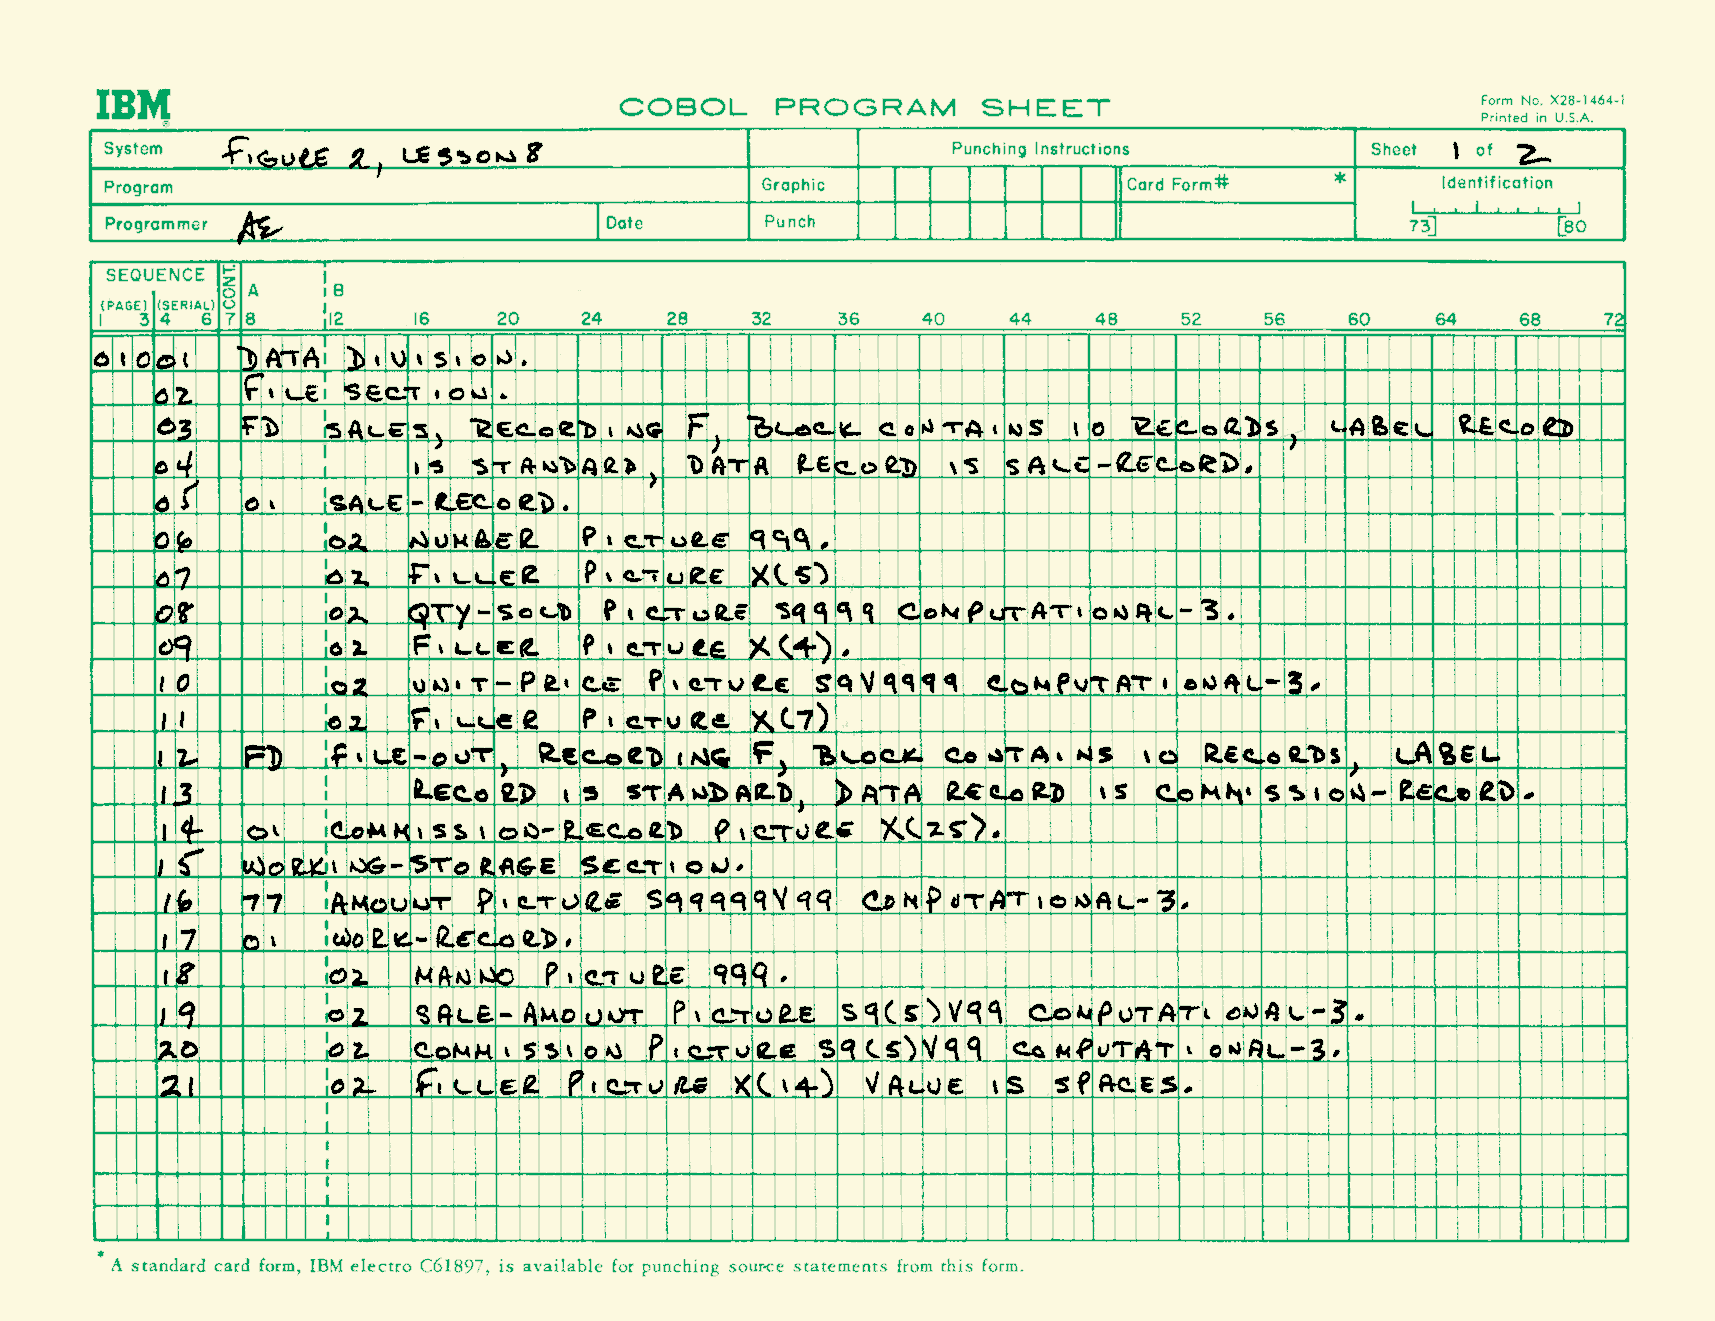 Coding sheet with part of a COBOL programme